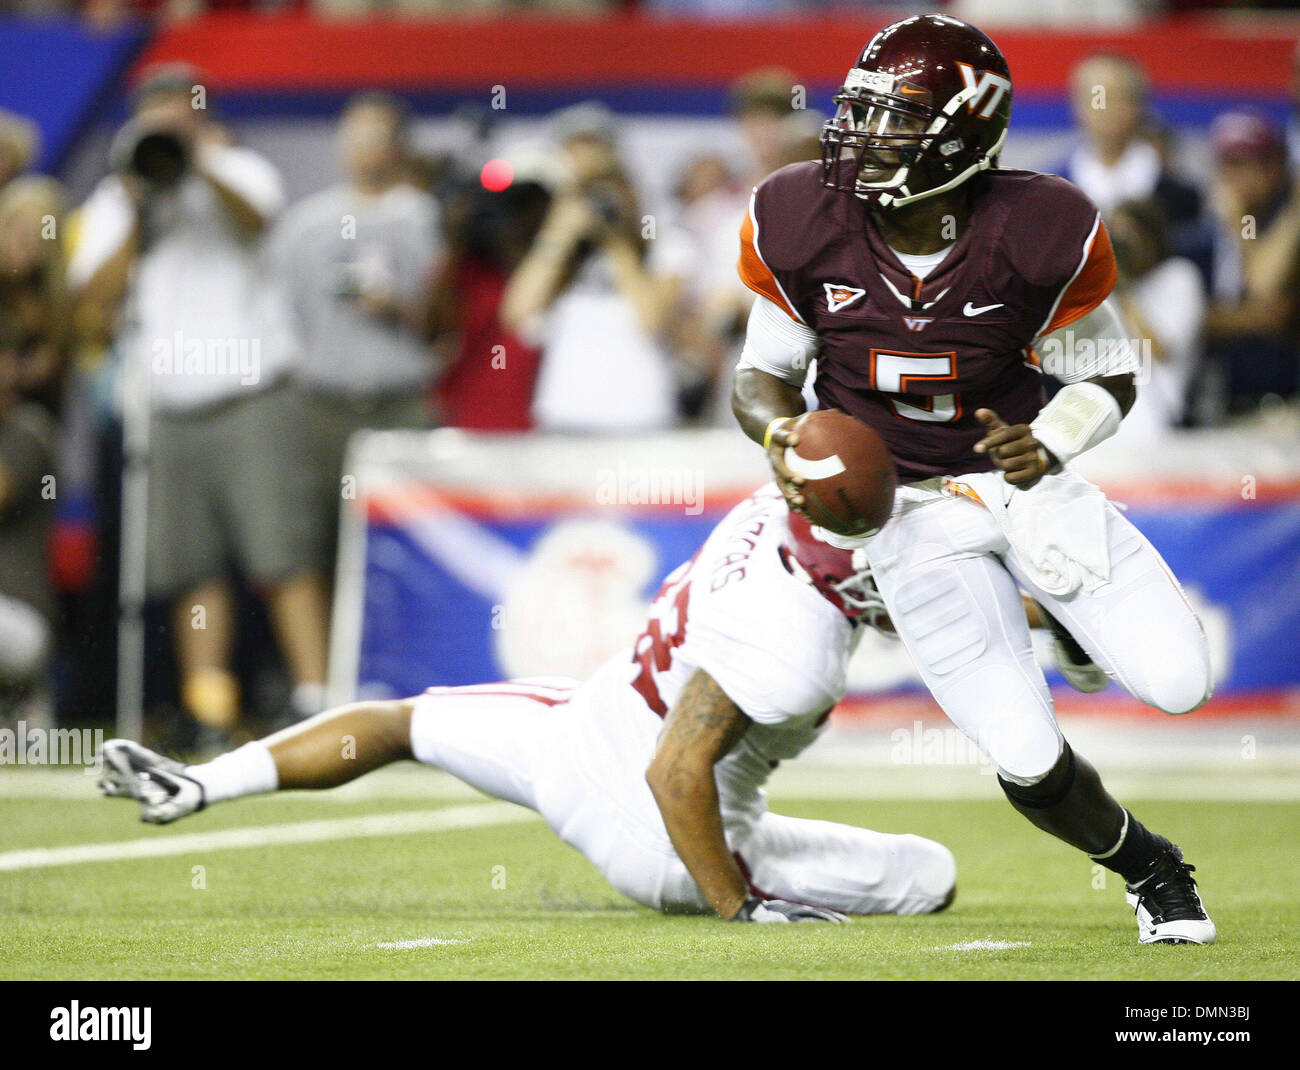 Sep 05, 2009 - Atlanta, Georgia, USA - NCAA Football - Virginia Tech's TYROD TAYLOR (5) runs around an Alabama defender during the first half of the two school's game in the Georgia Dome (Credit Image: © Josh D. Weiss/ZUMA Press) - Stock Image